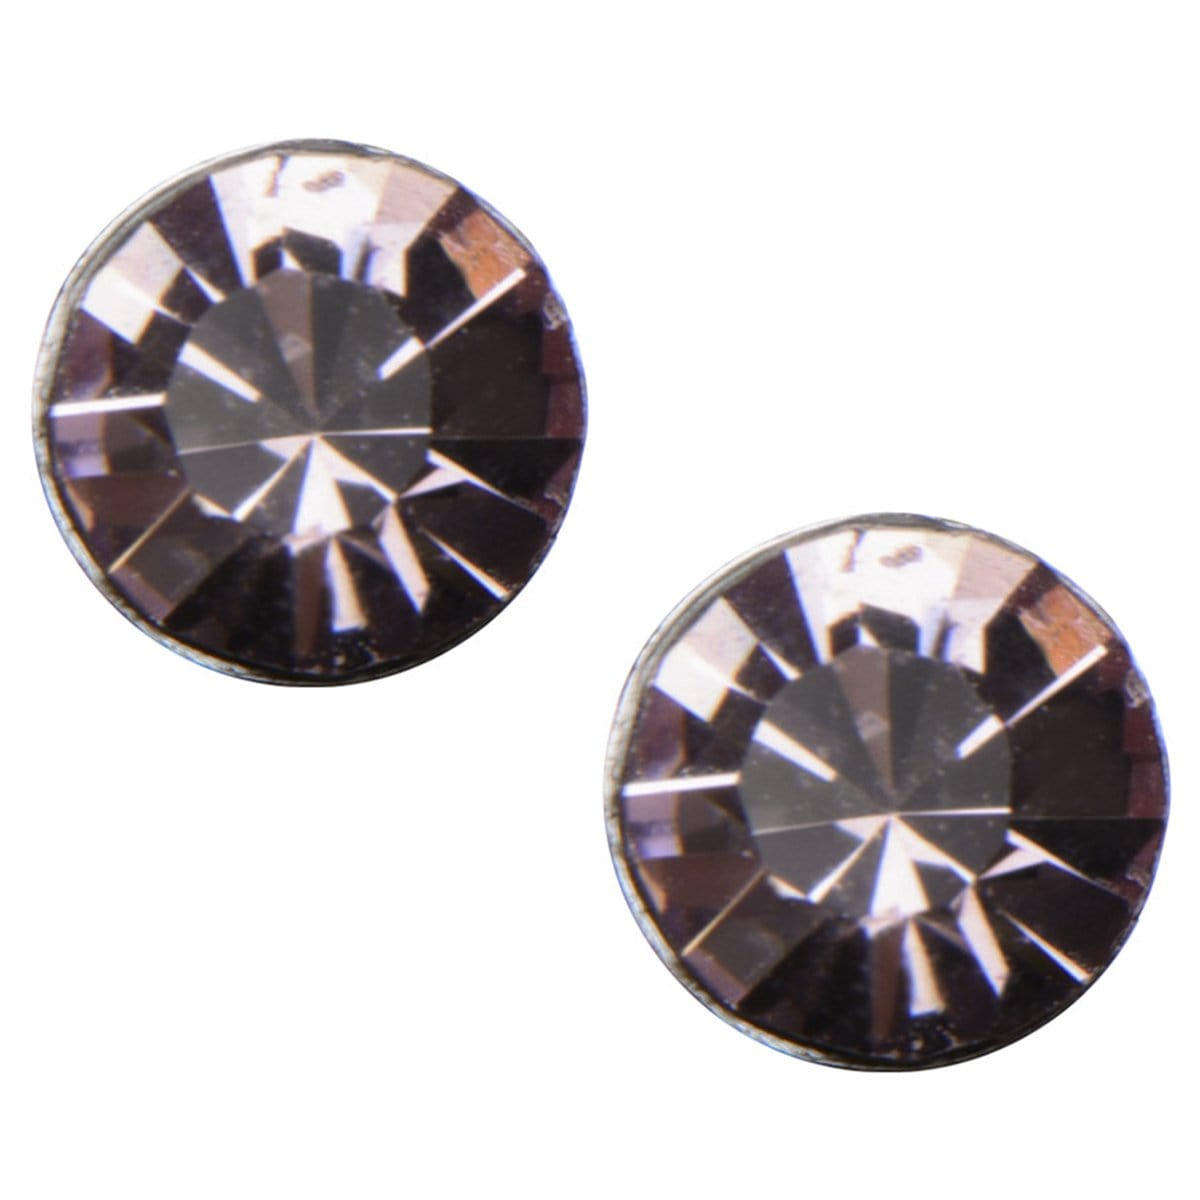 Silver Stainless Steel 4mm Lavender CZ Safety Back Ear Stud Earrings